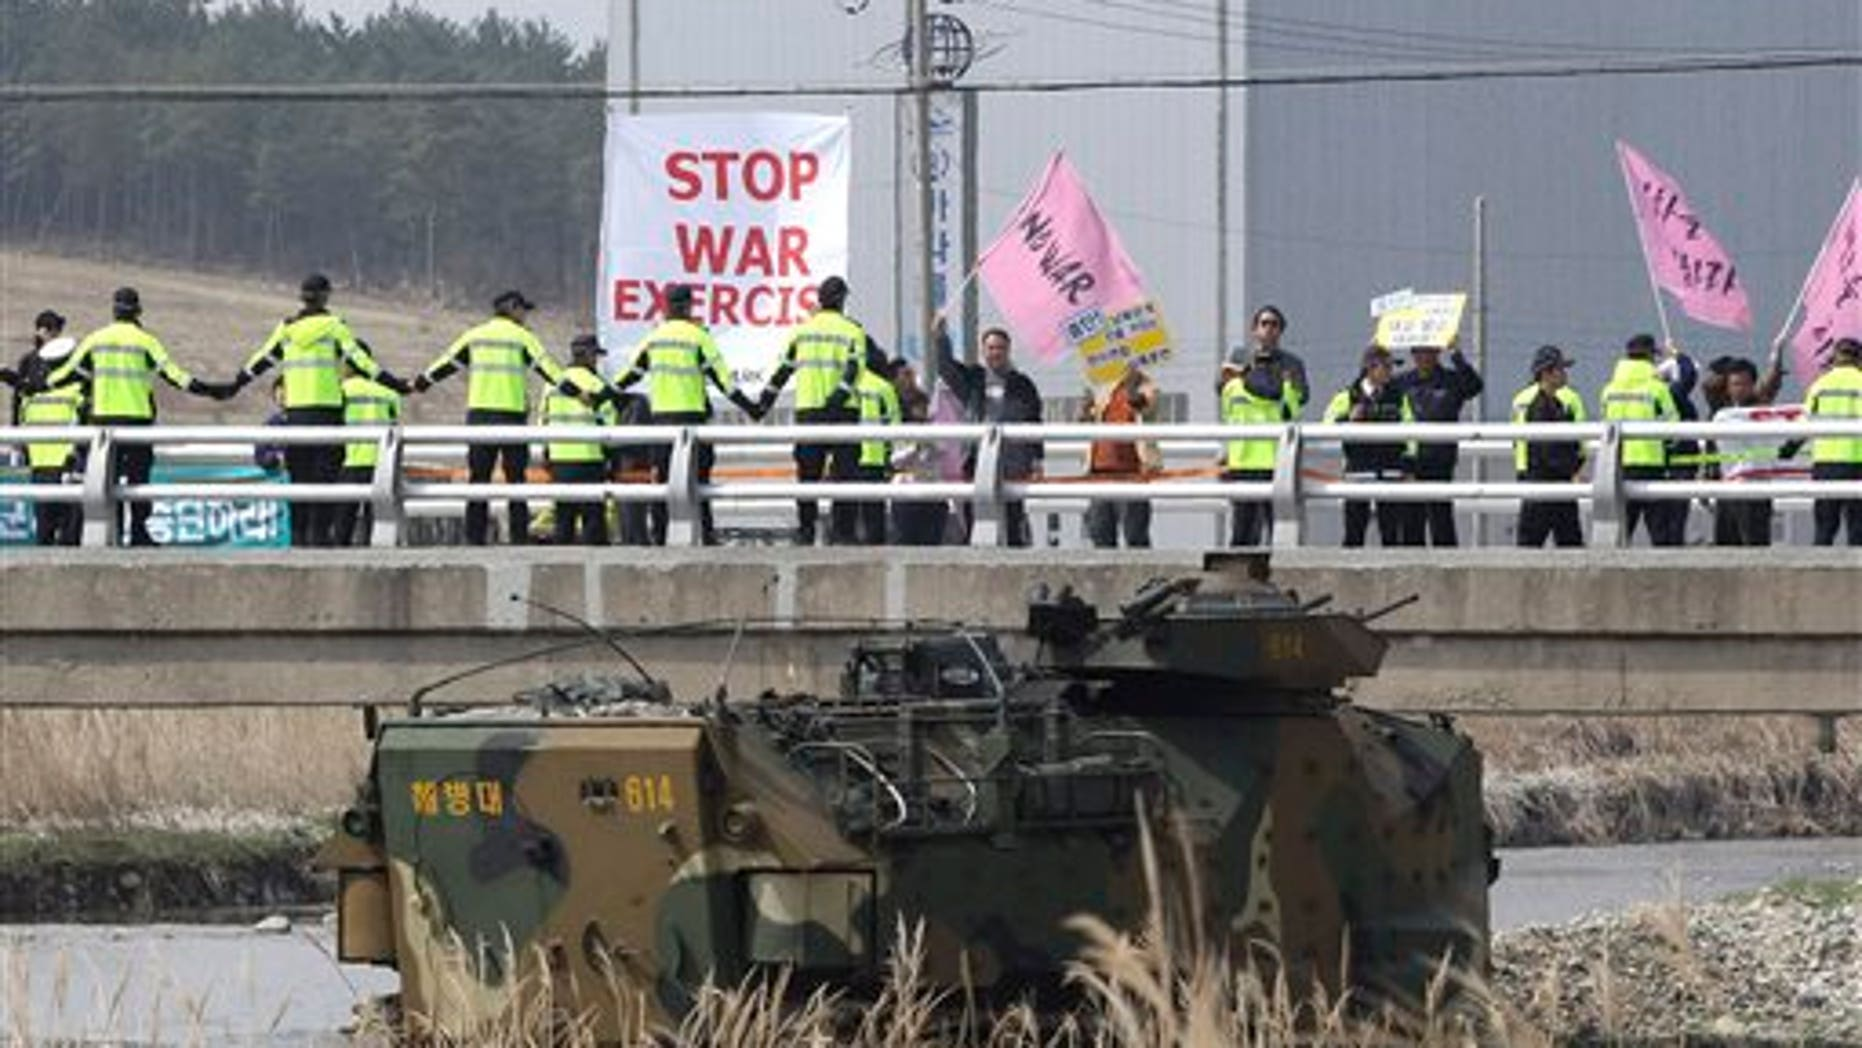 Anti-war protesters stage a rally during the U.S.-South Korea joint landing exercises called Ssangyong as part of the Foal Eagle military exercises in Pohang, South Korea, Monday, March 31, 2014. South Korea on Monday returned fire into North Korean waters after shells from a North Korean live-fire drill fell south of the rivals' disputed western sea boundary, a South Korean military official said. (AP Photo/Ahn Young-joon)